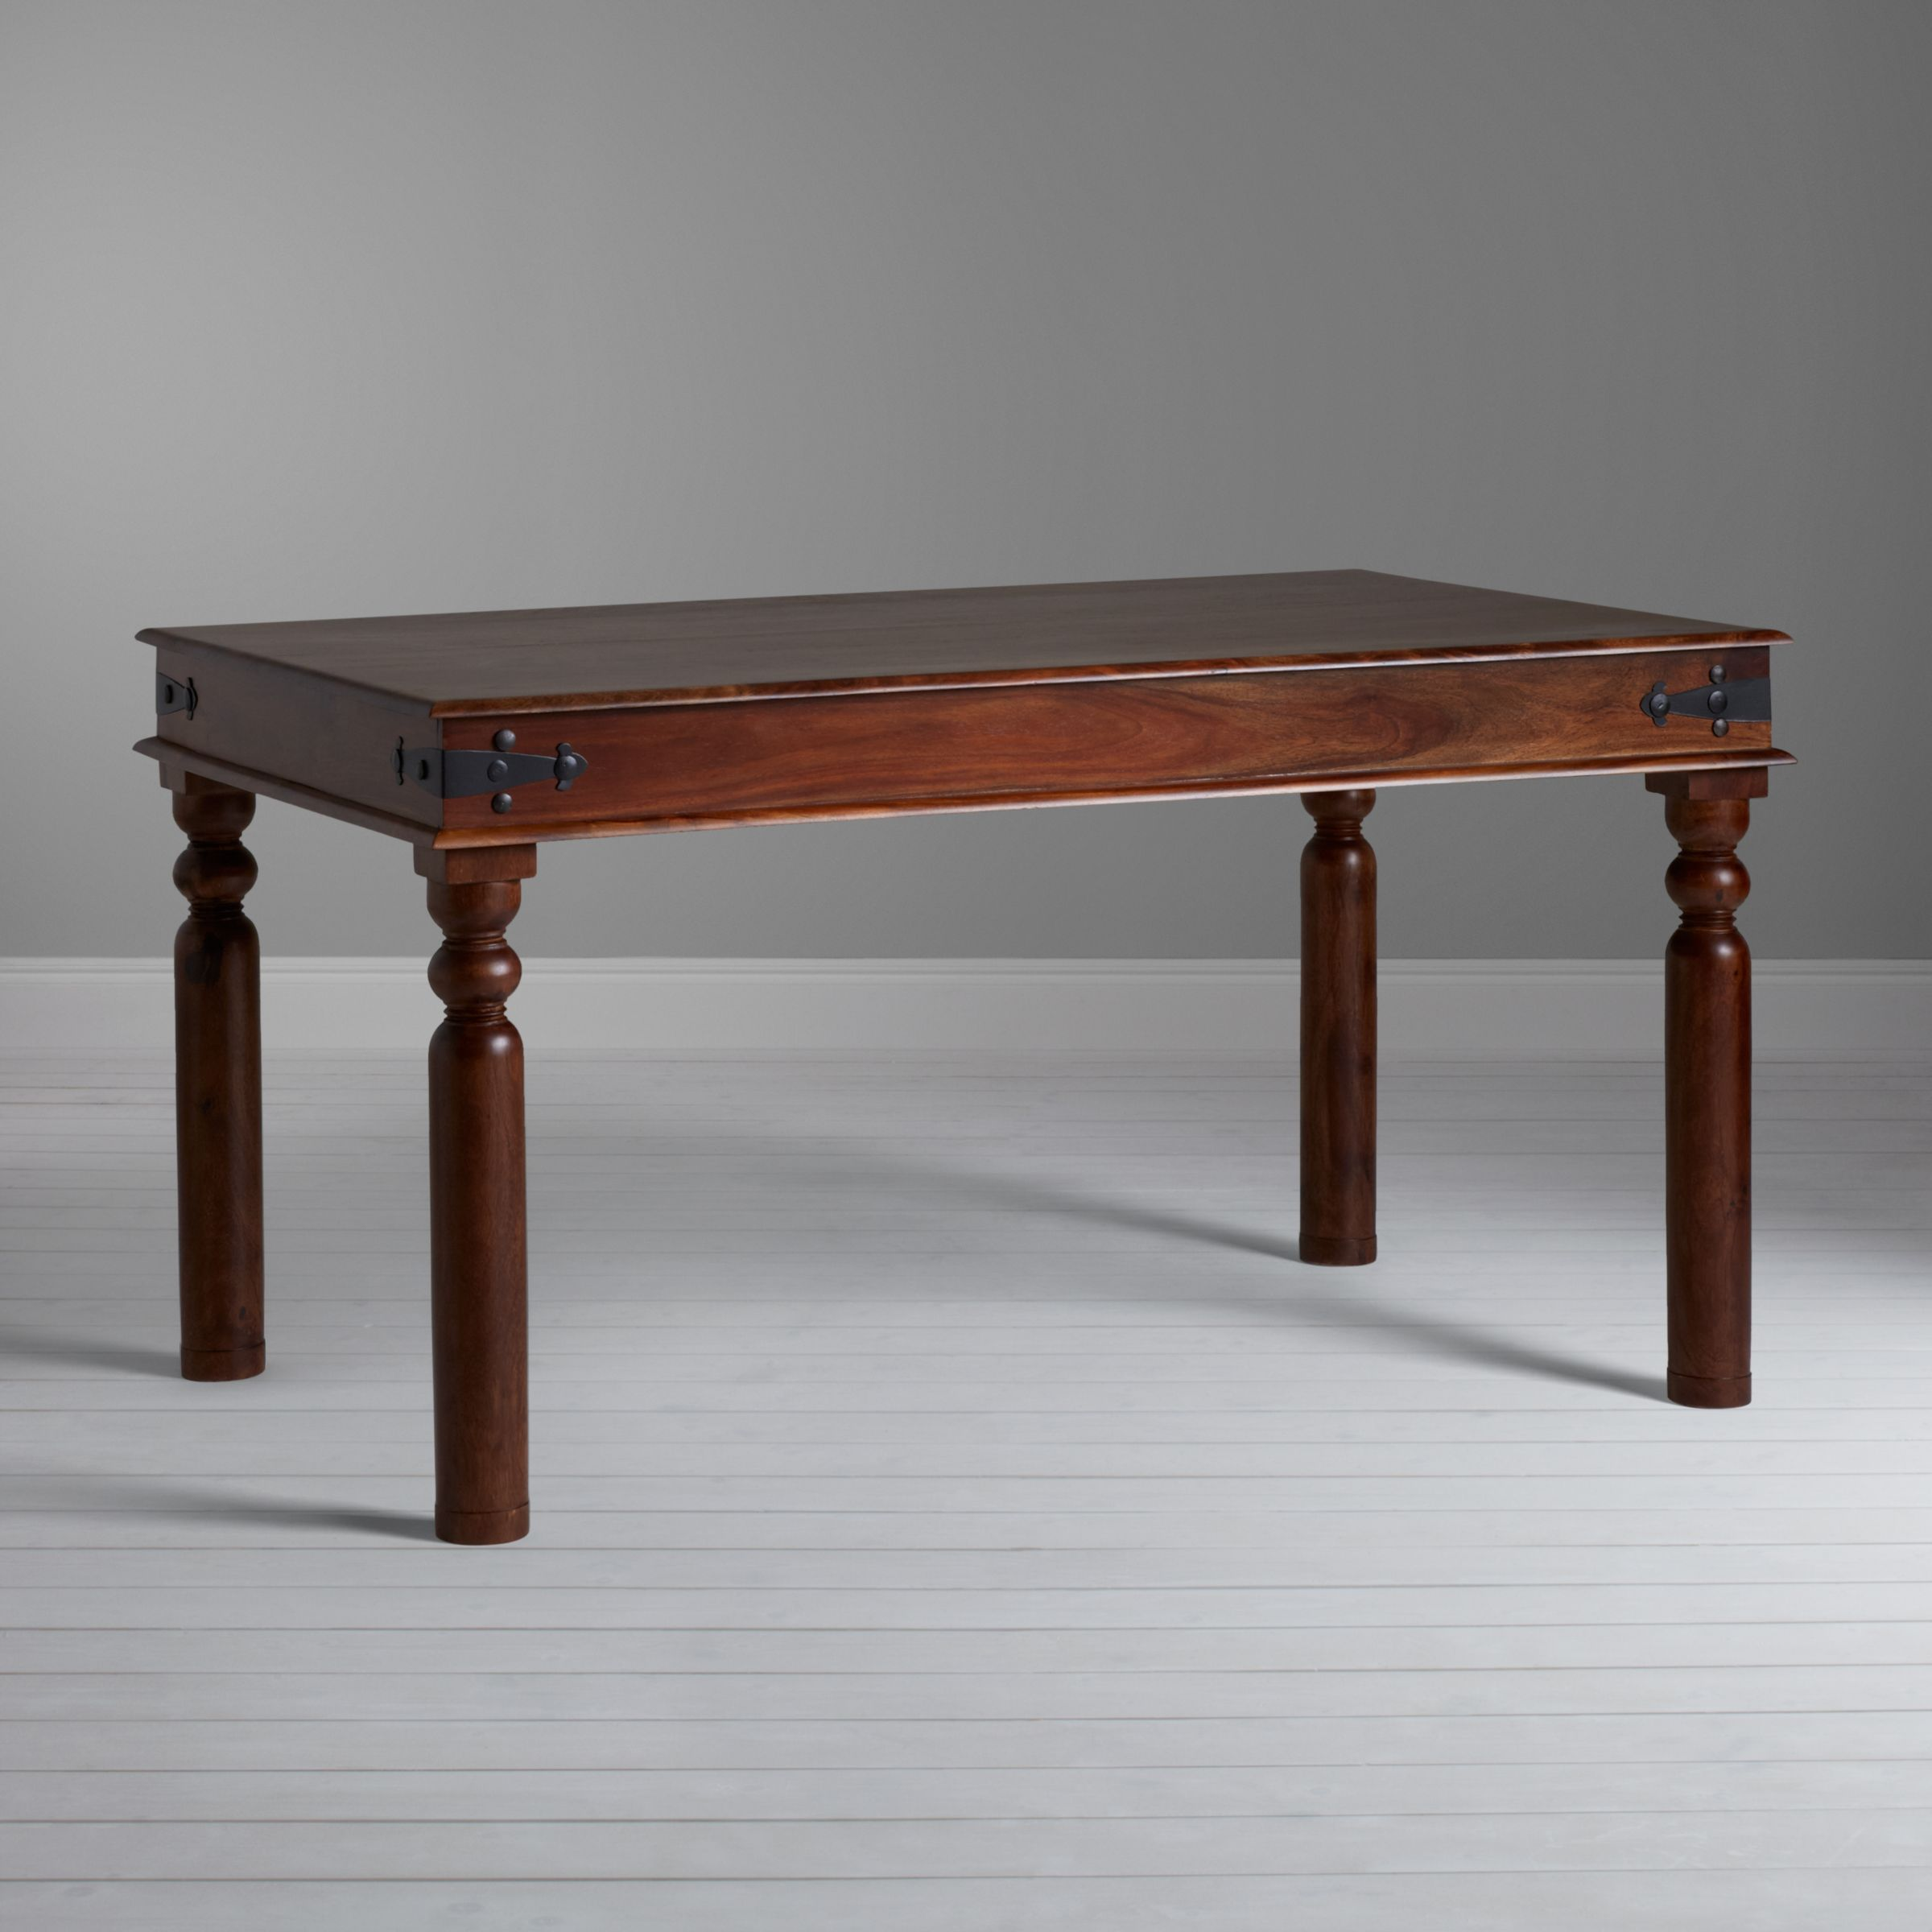 Indian Wood Dining Table Shop For Cheap Tables And Save Online